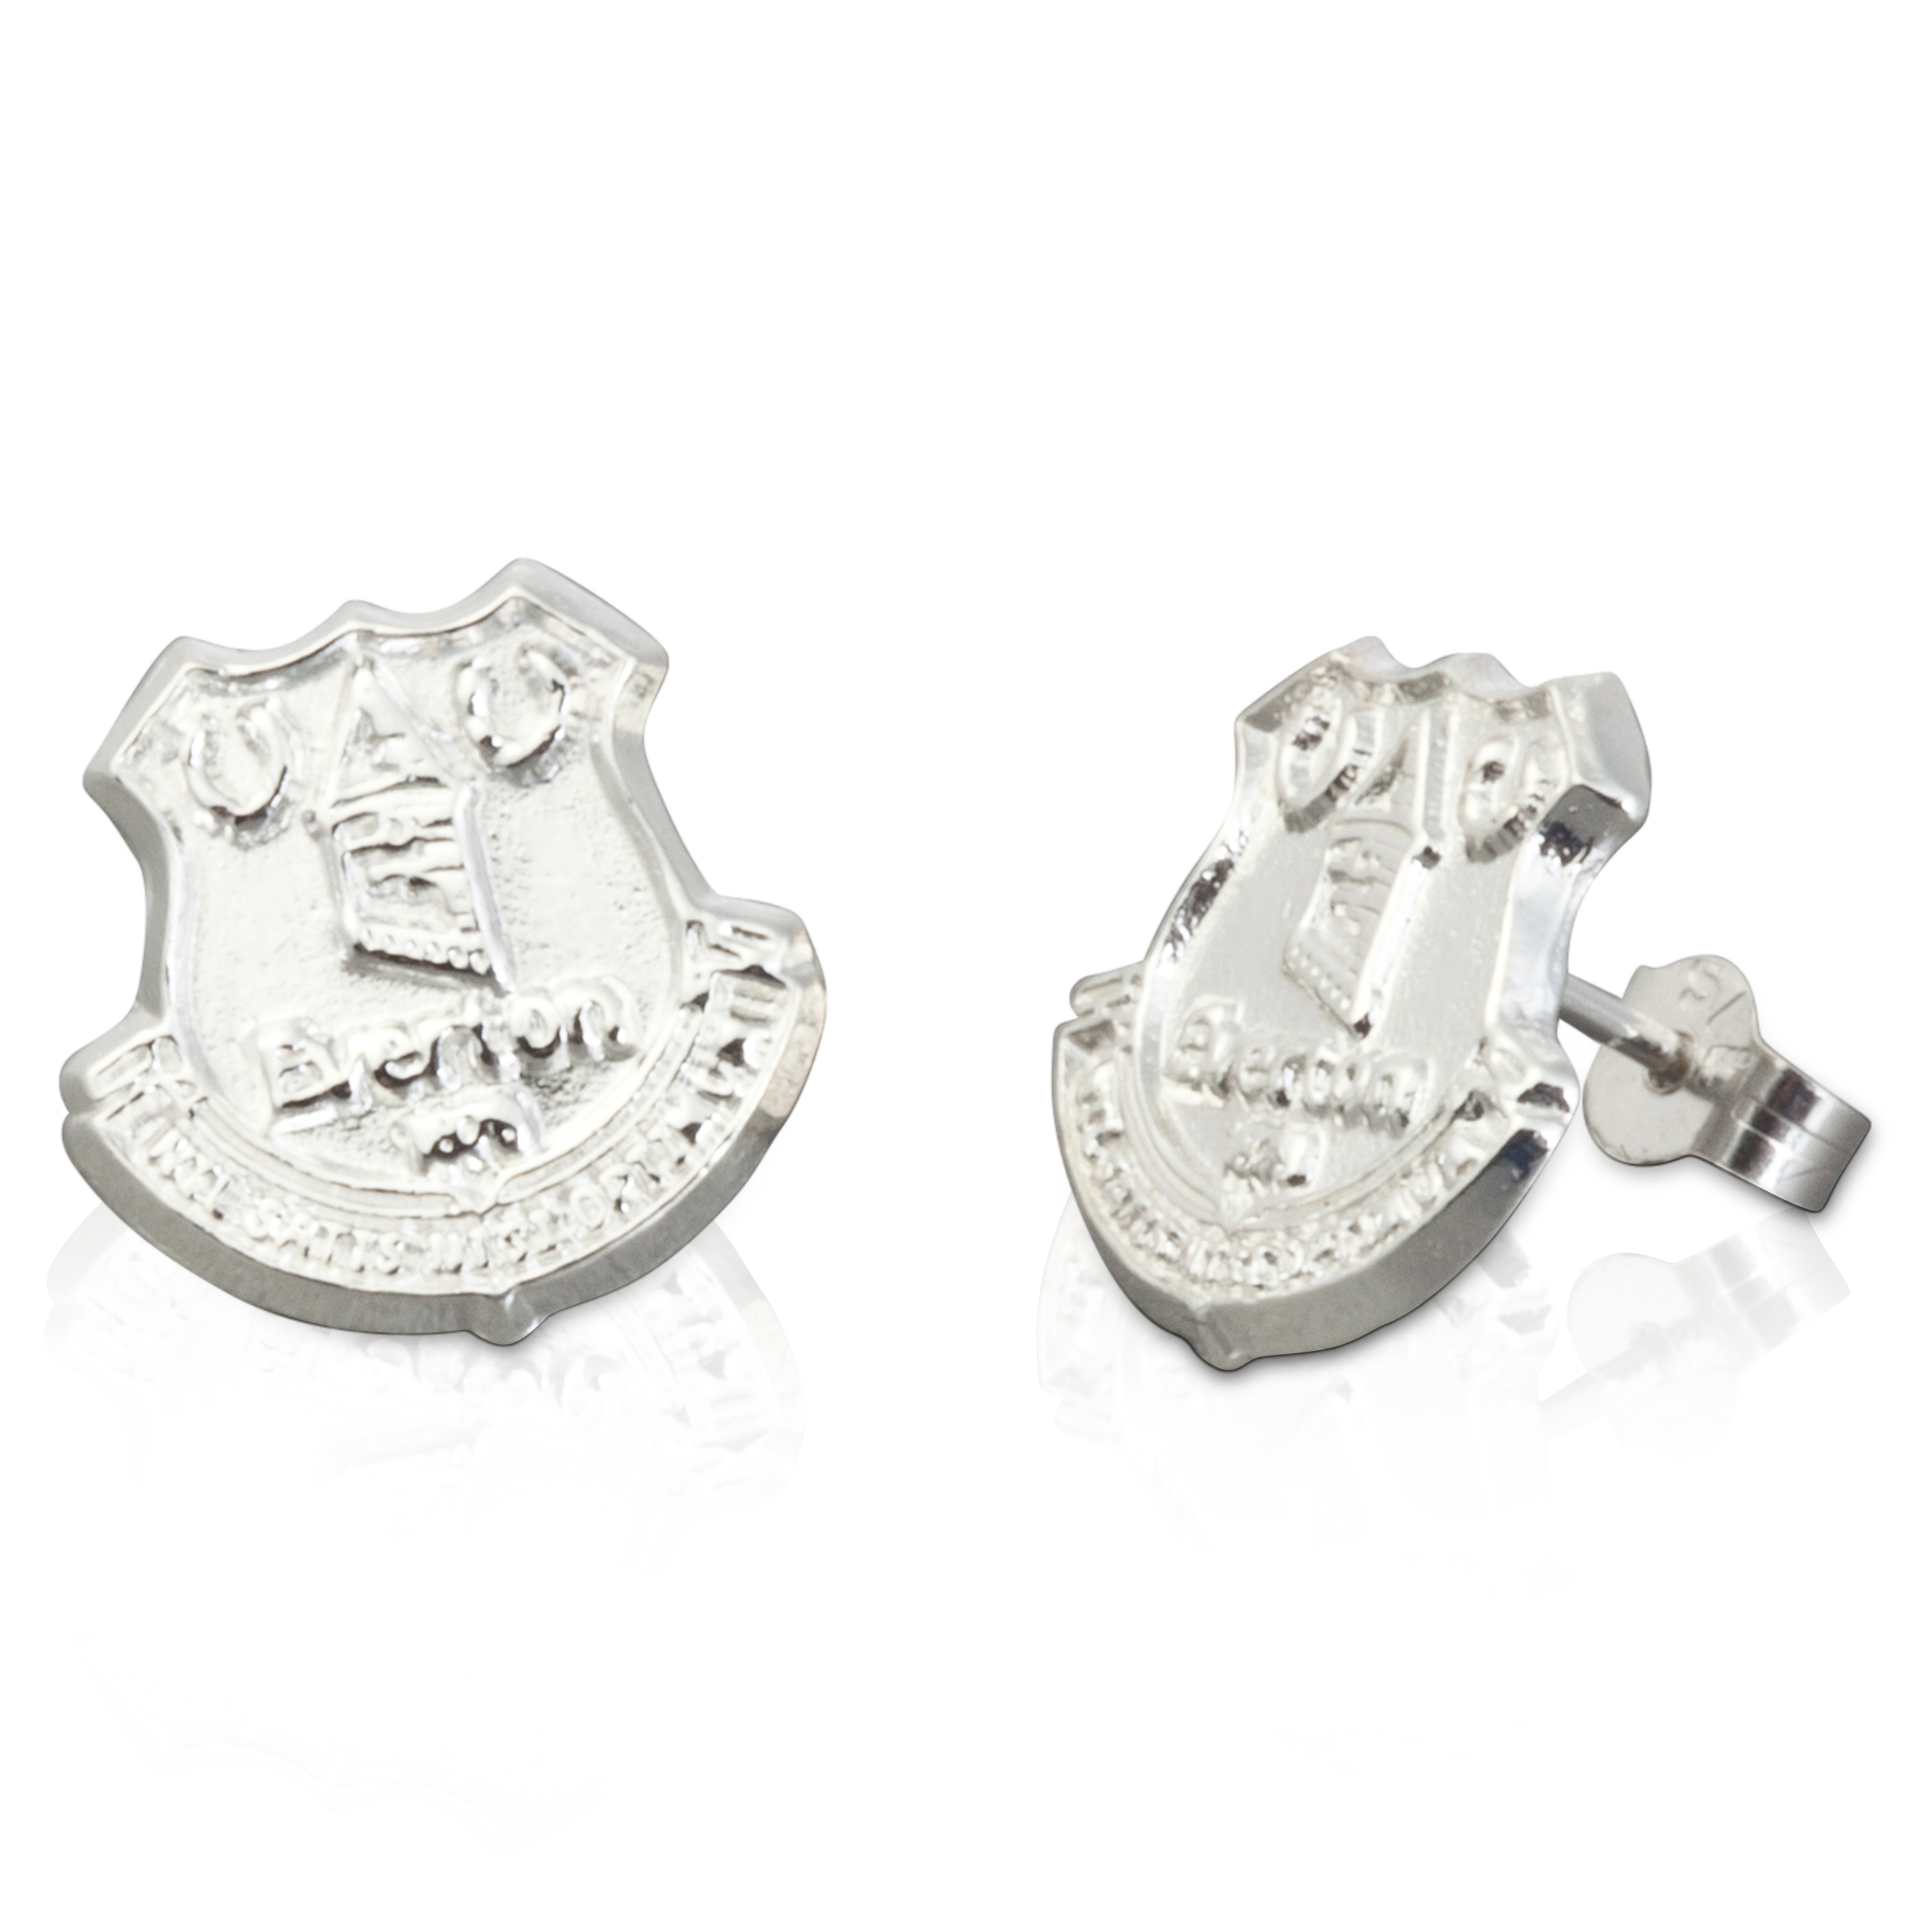 Everton Crest Stud Earring - Pair - Sterling Silver